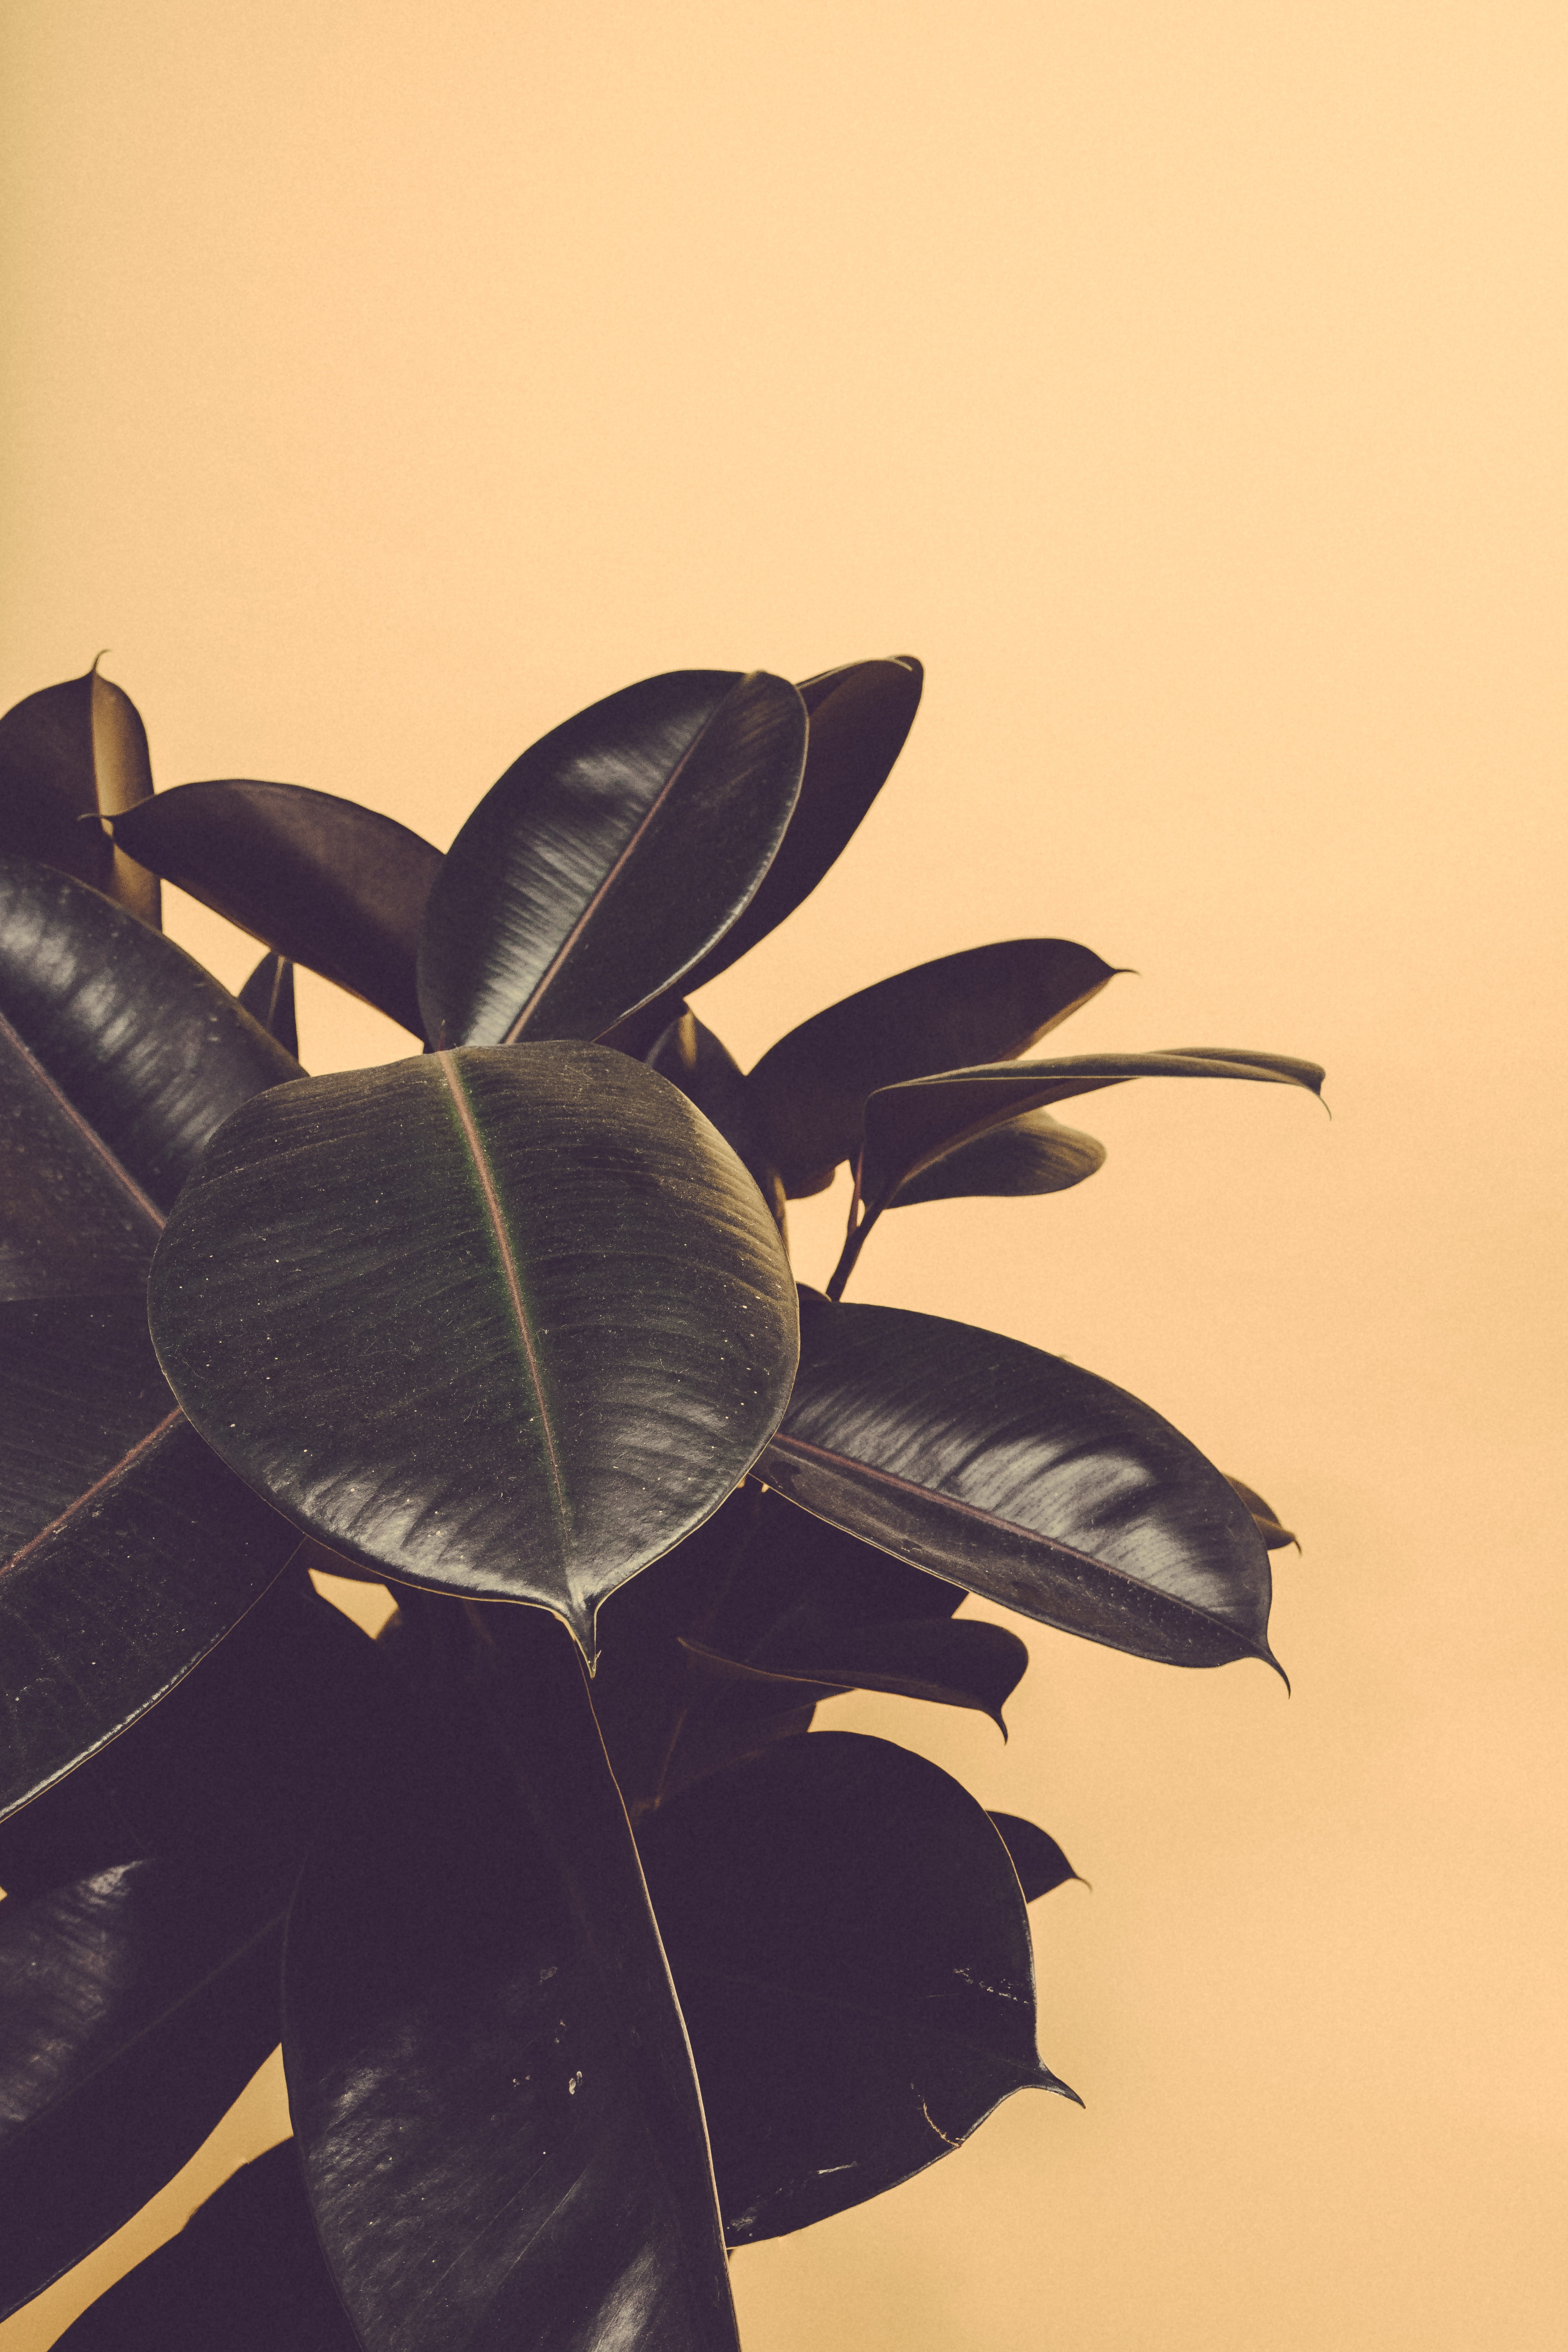 closeup photography of rubber plant